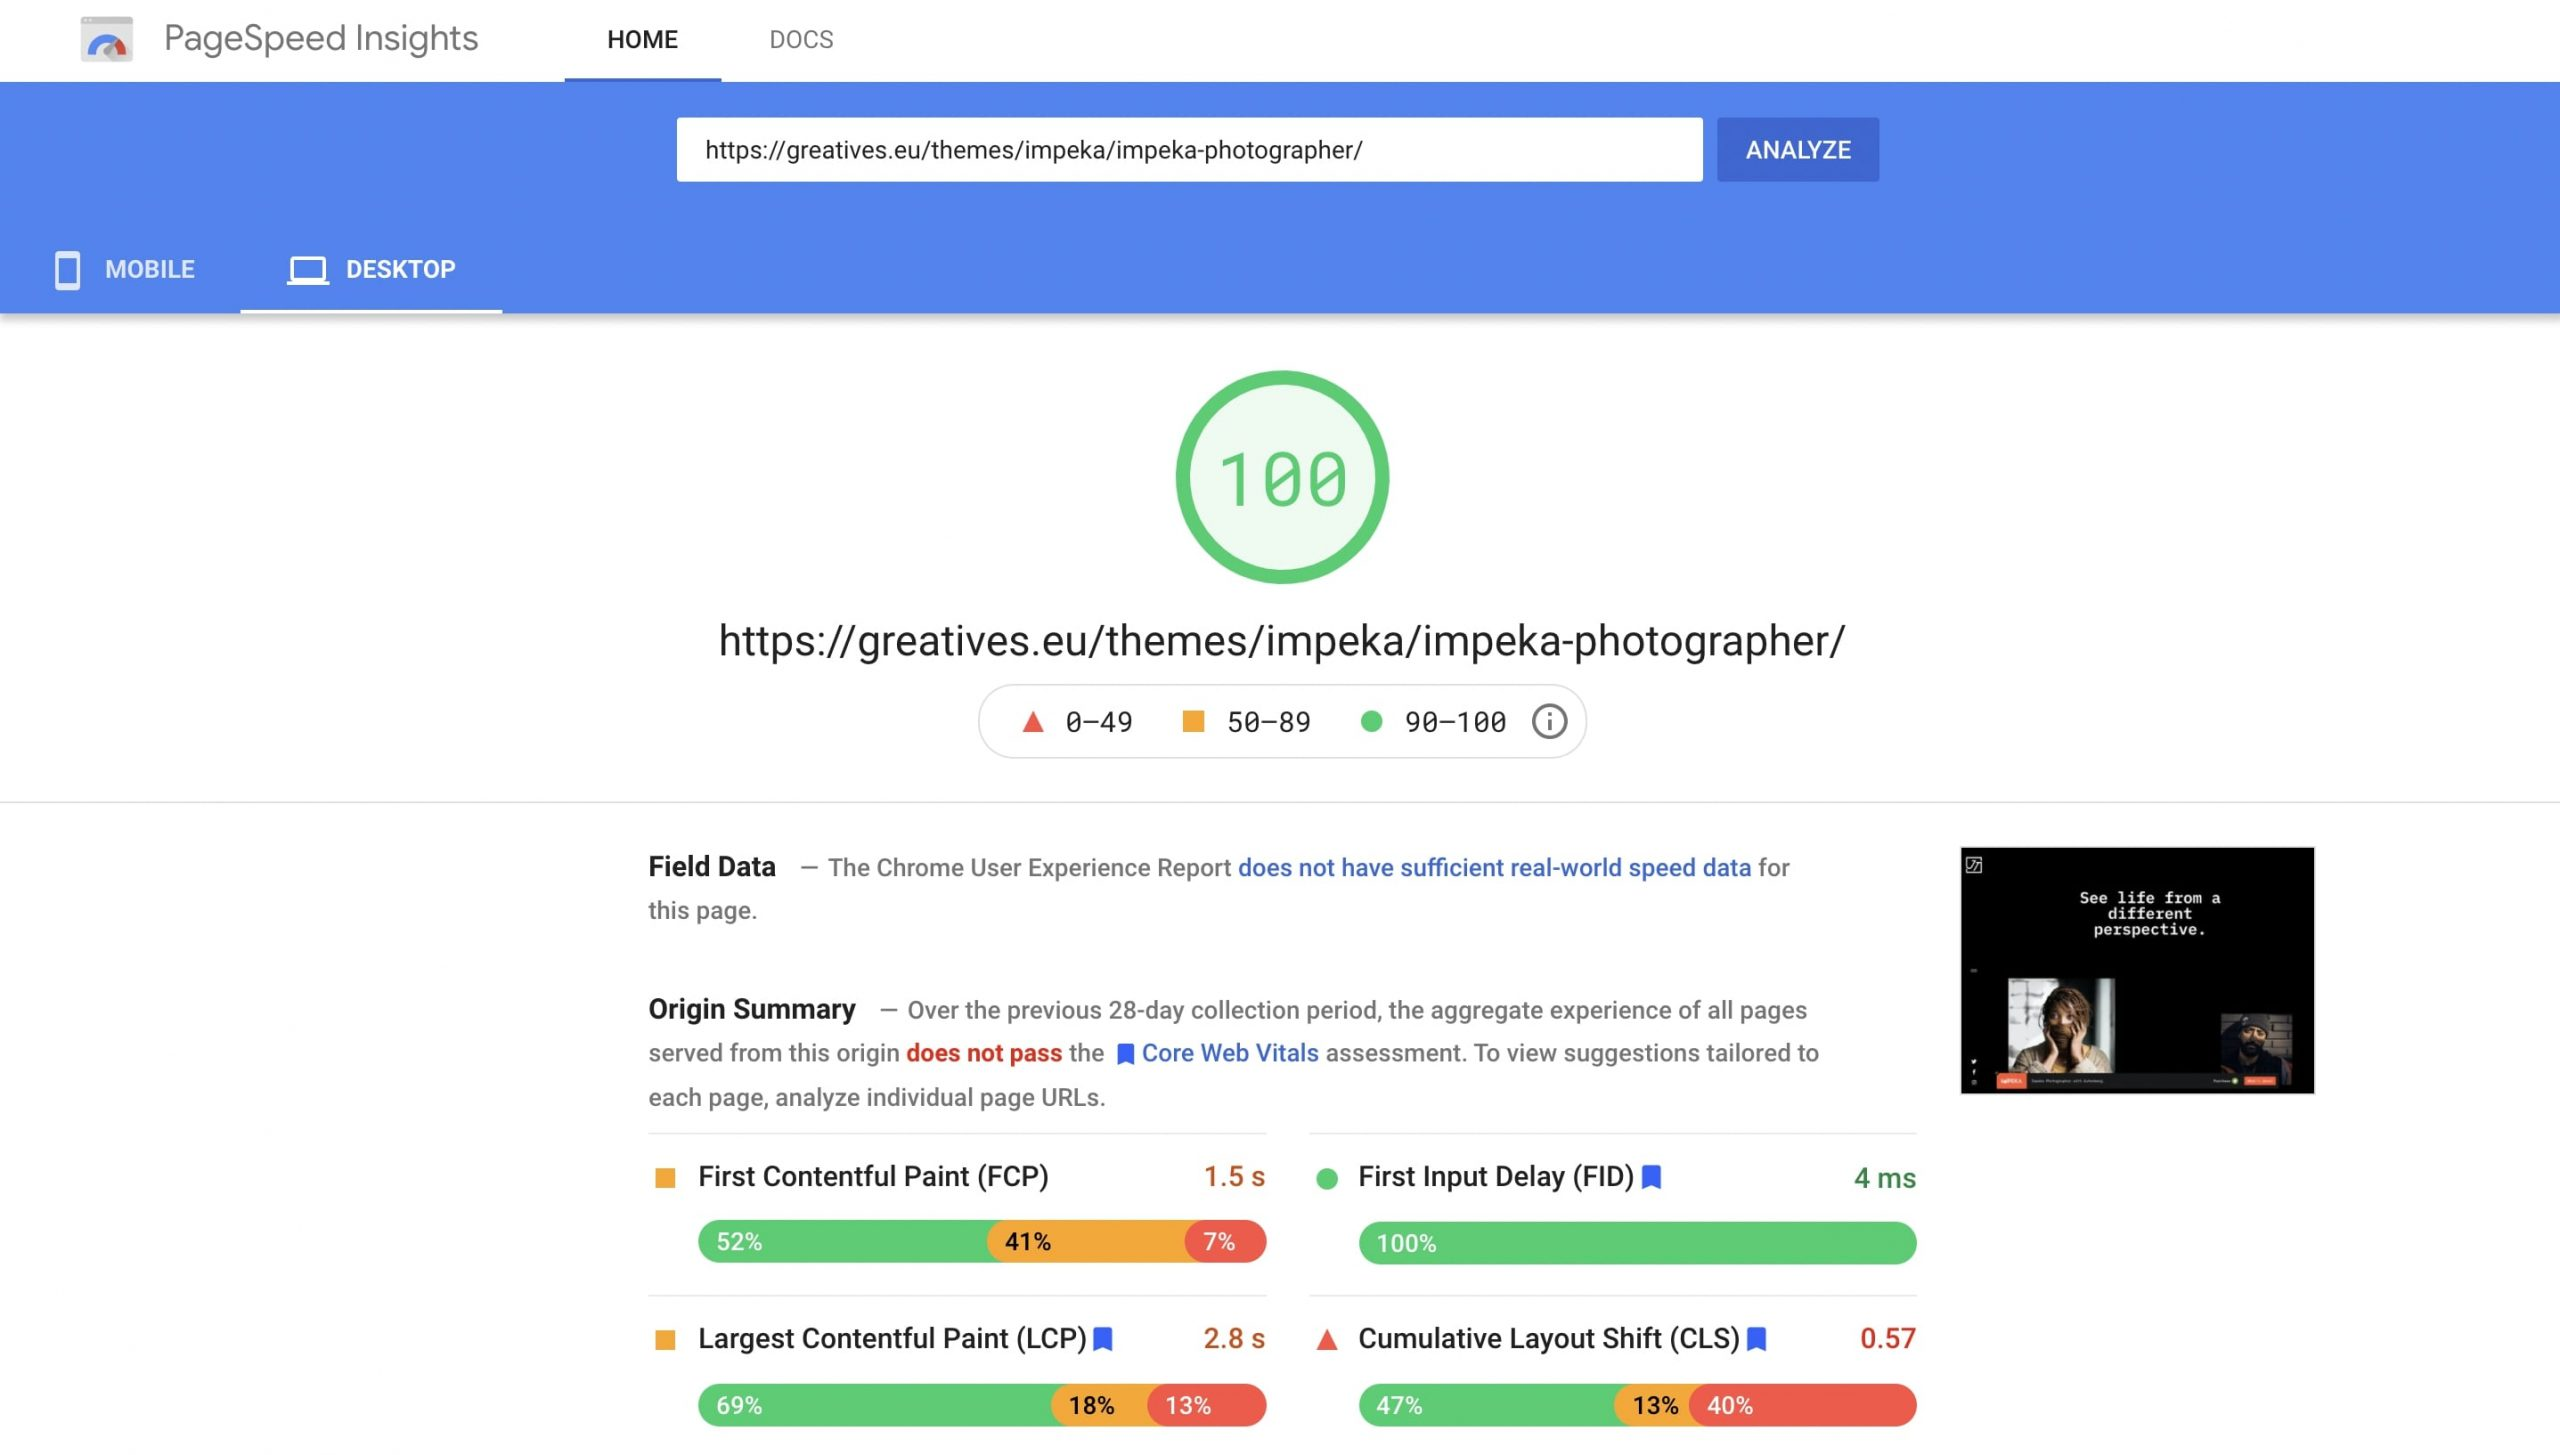 Impeka Photographer on PageSpeed Insights